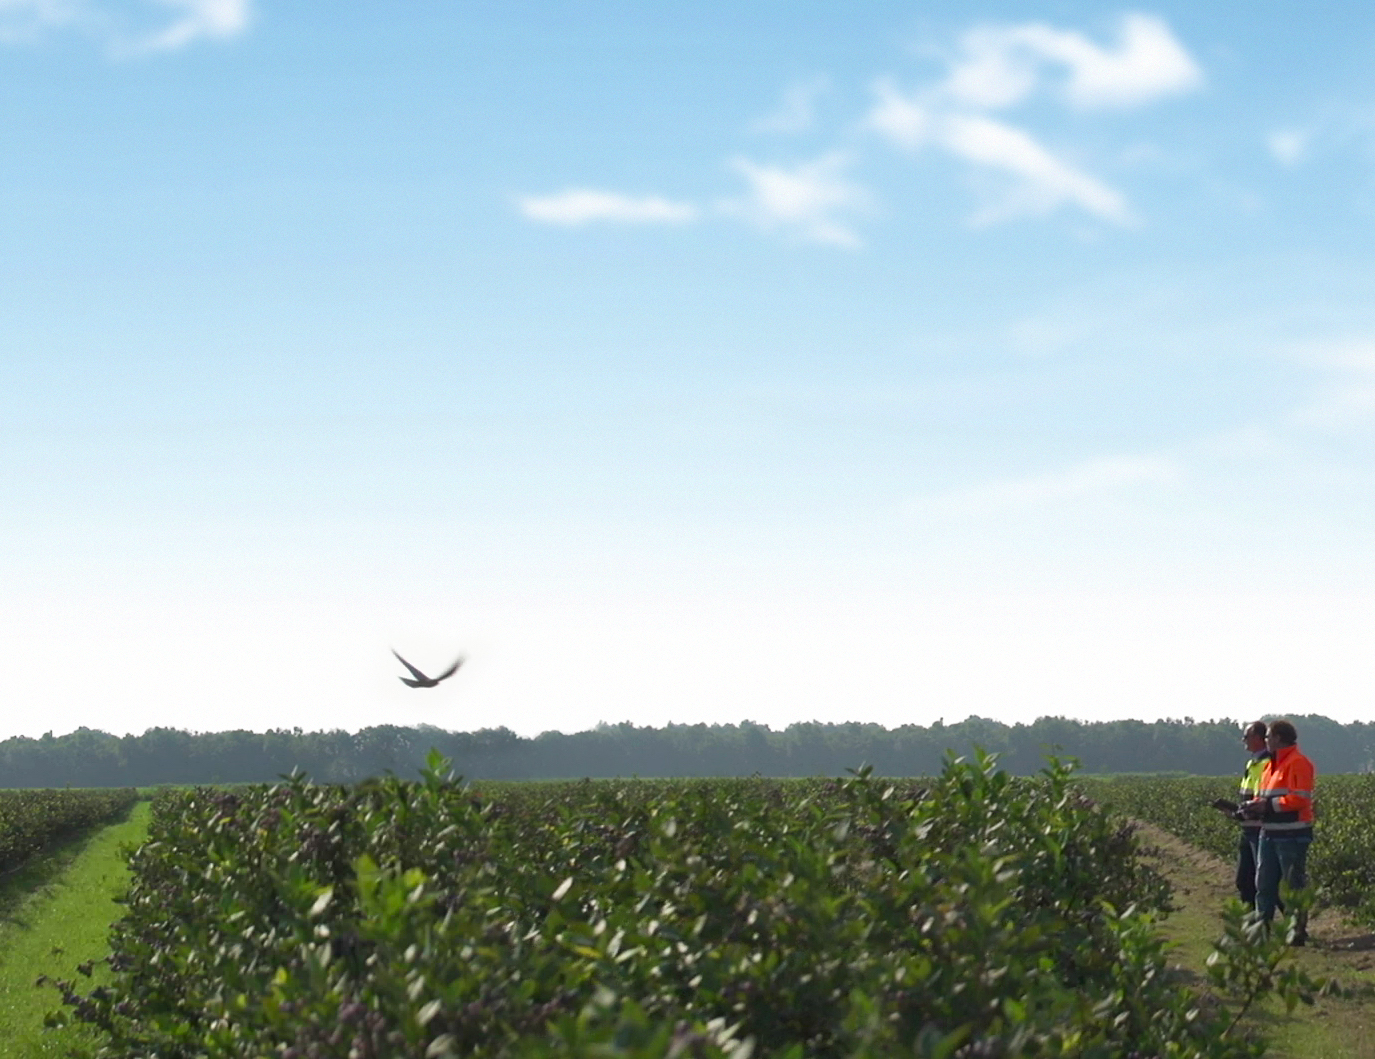 The Drone Bird preventing bird damage to crops